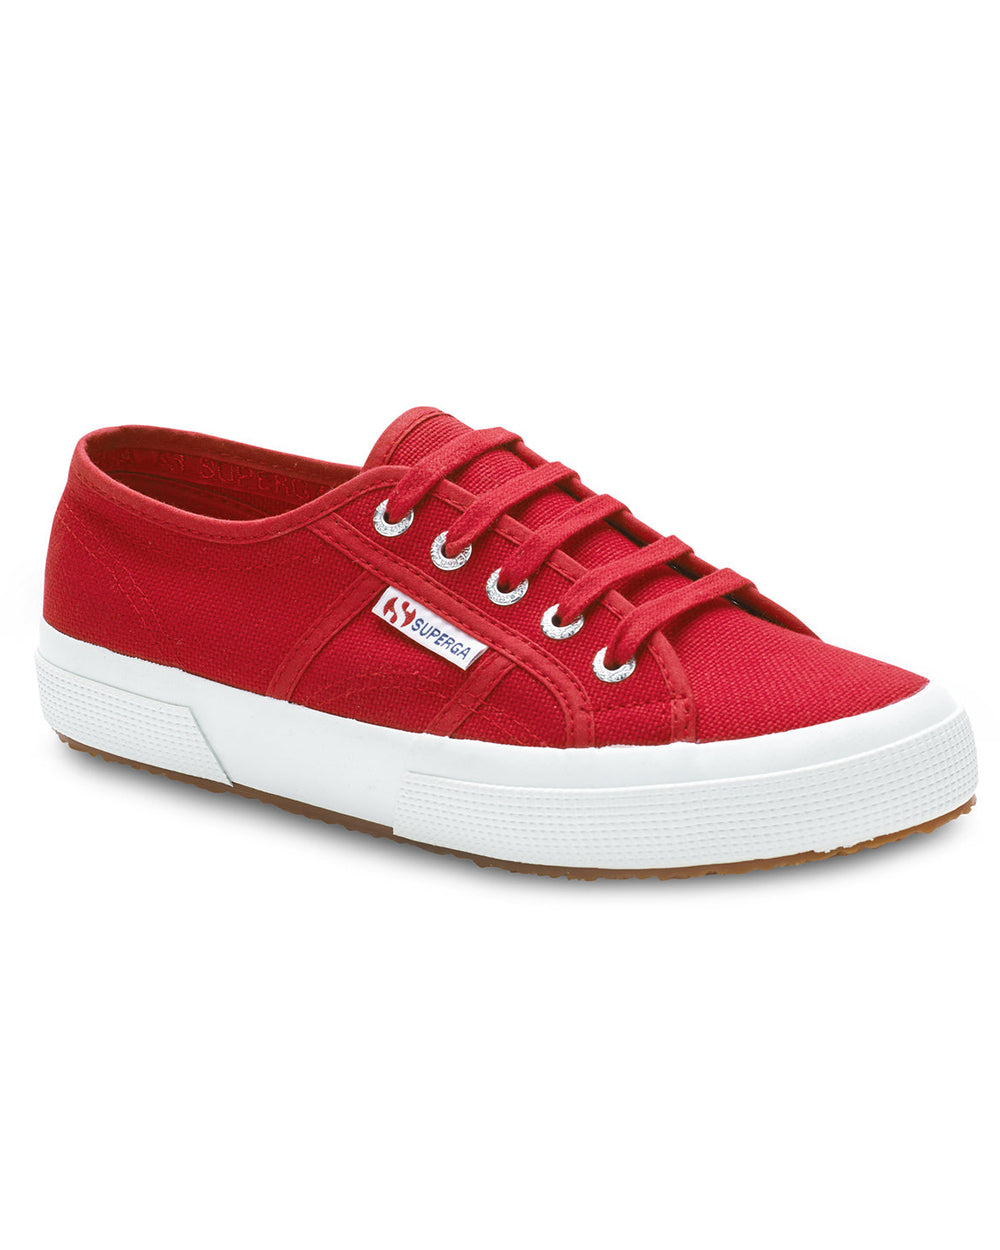 Superga 2490 Bold - AAH Red Flame-Off White